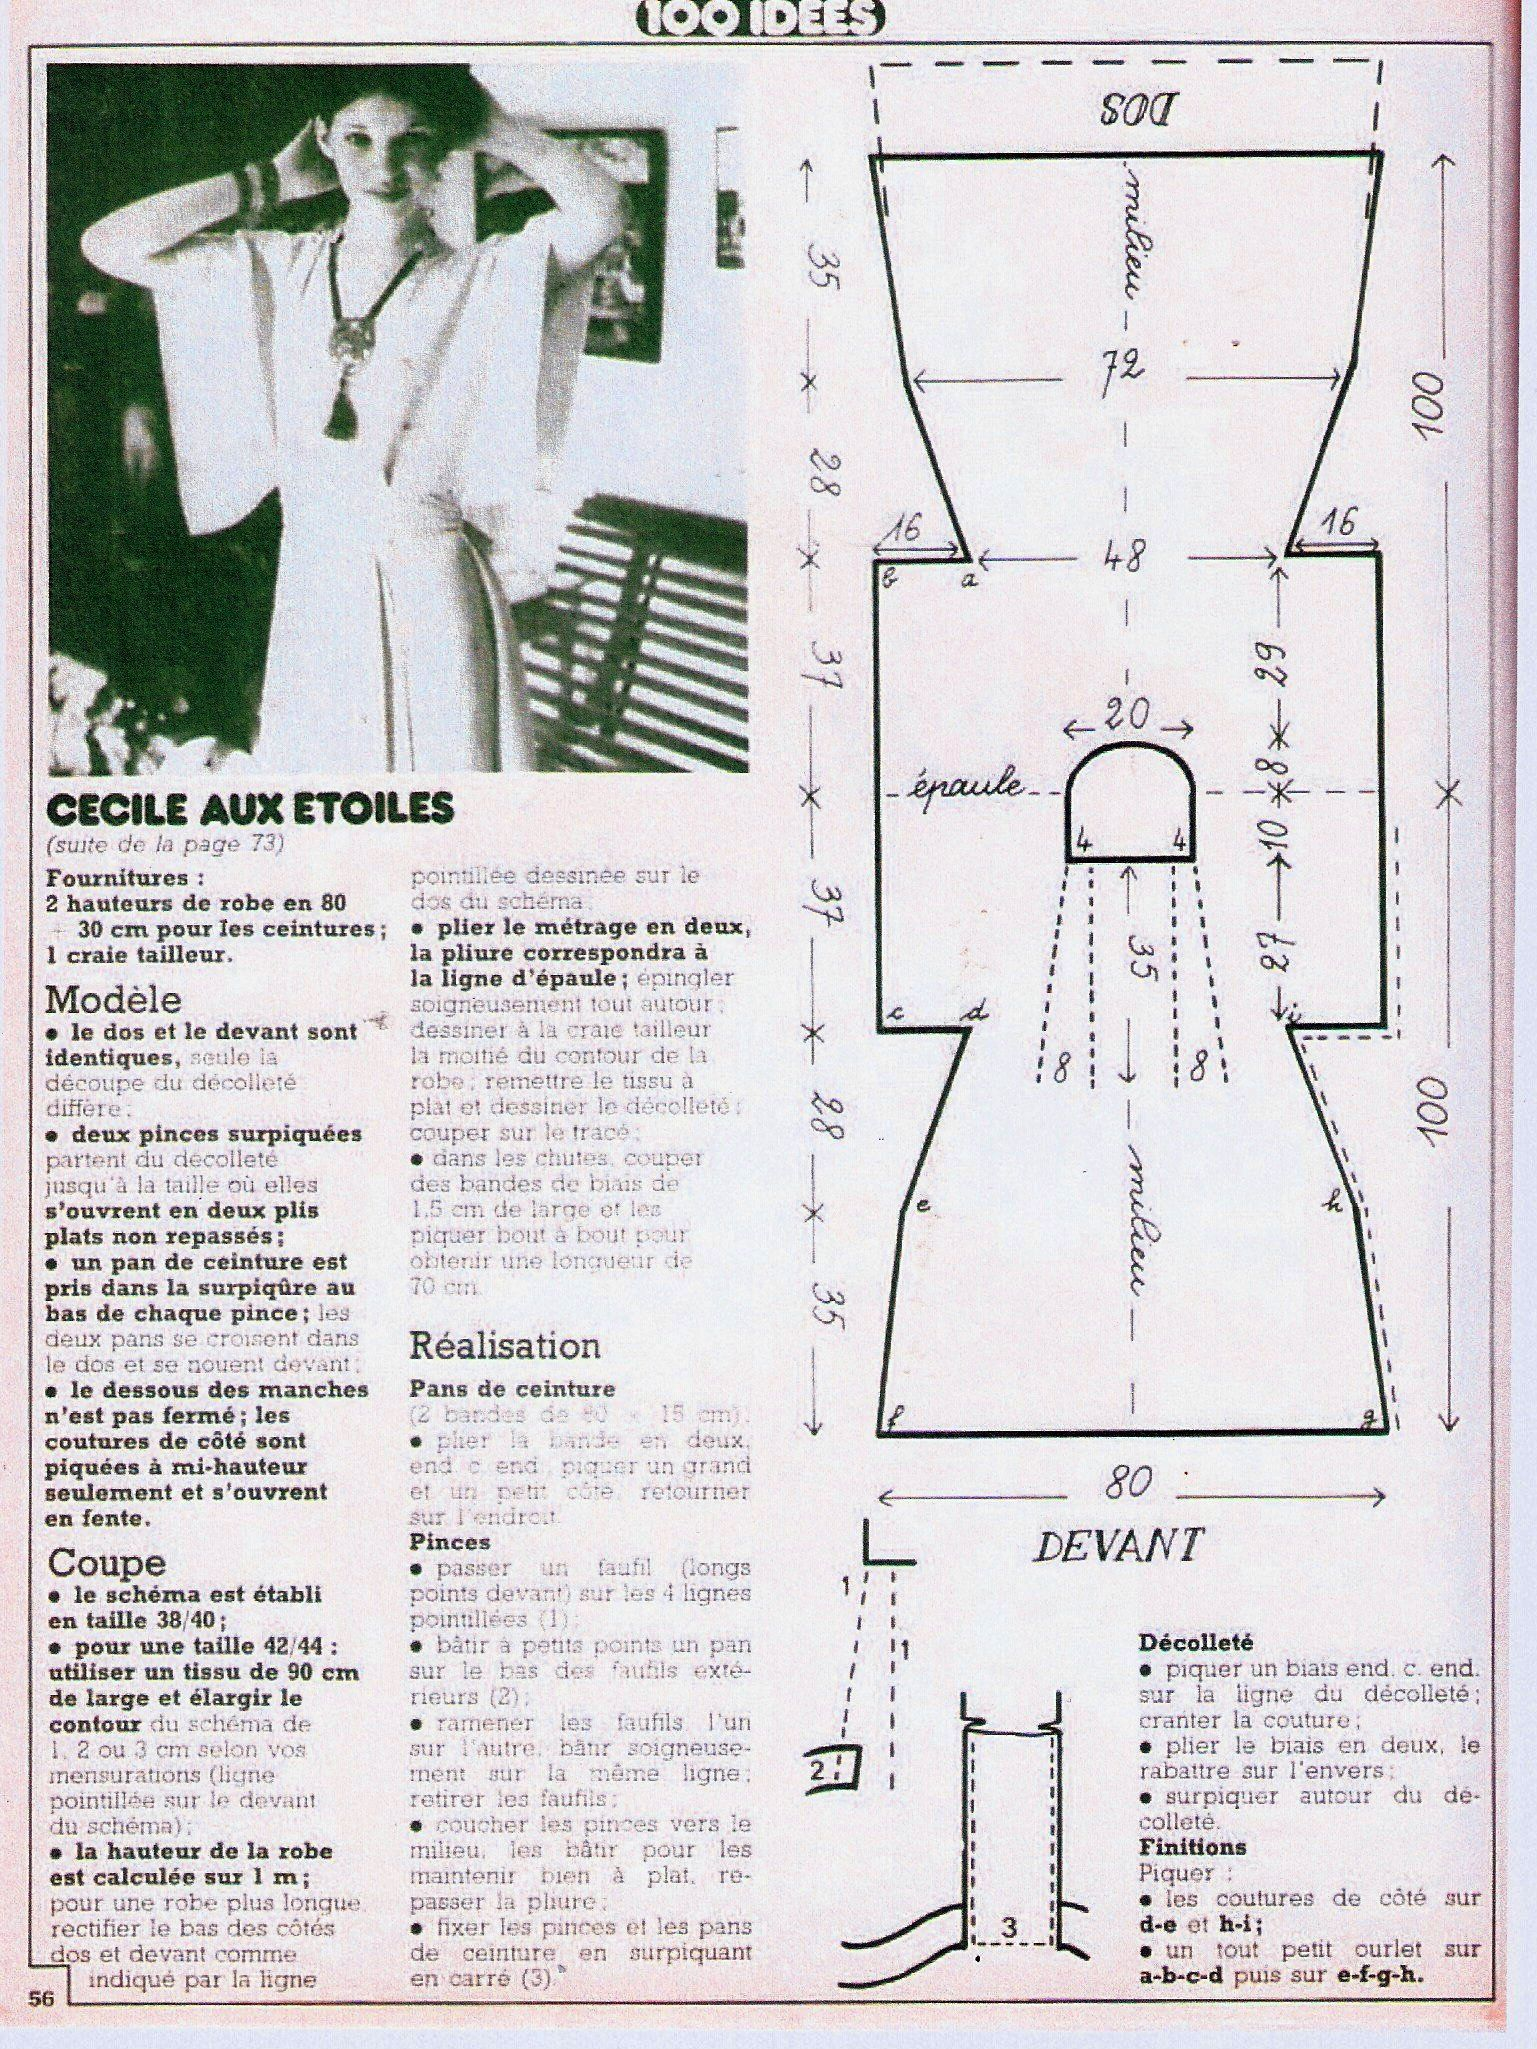 Pin de Mary Duque Q en Patrones | Sewing, Sewing patterns y Couture ...